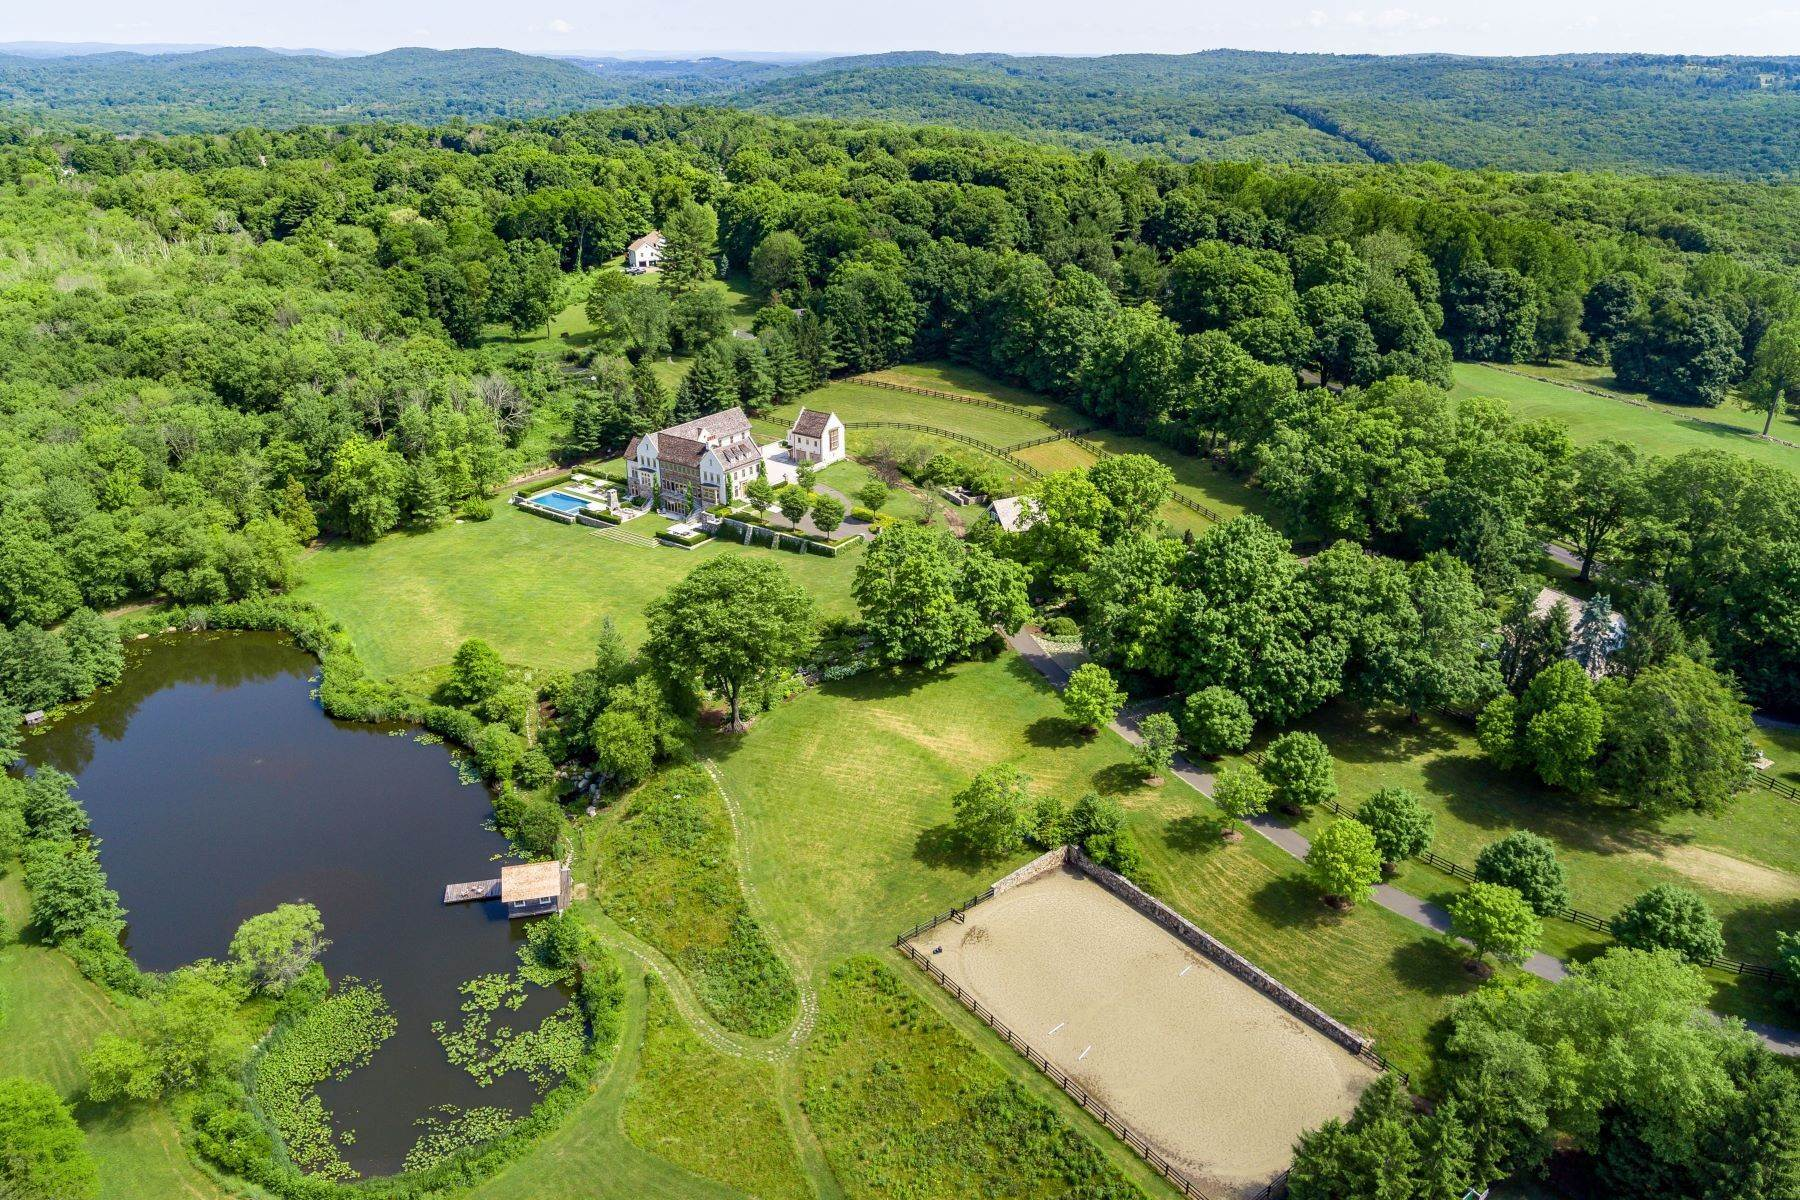 Single Family Homes for Sale at Maple Hill Farm on Nearly 50 Acres 187 Umpawaug Road Redding, Connecticut 06896 United States